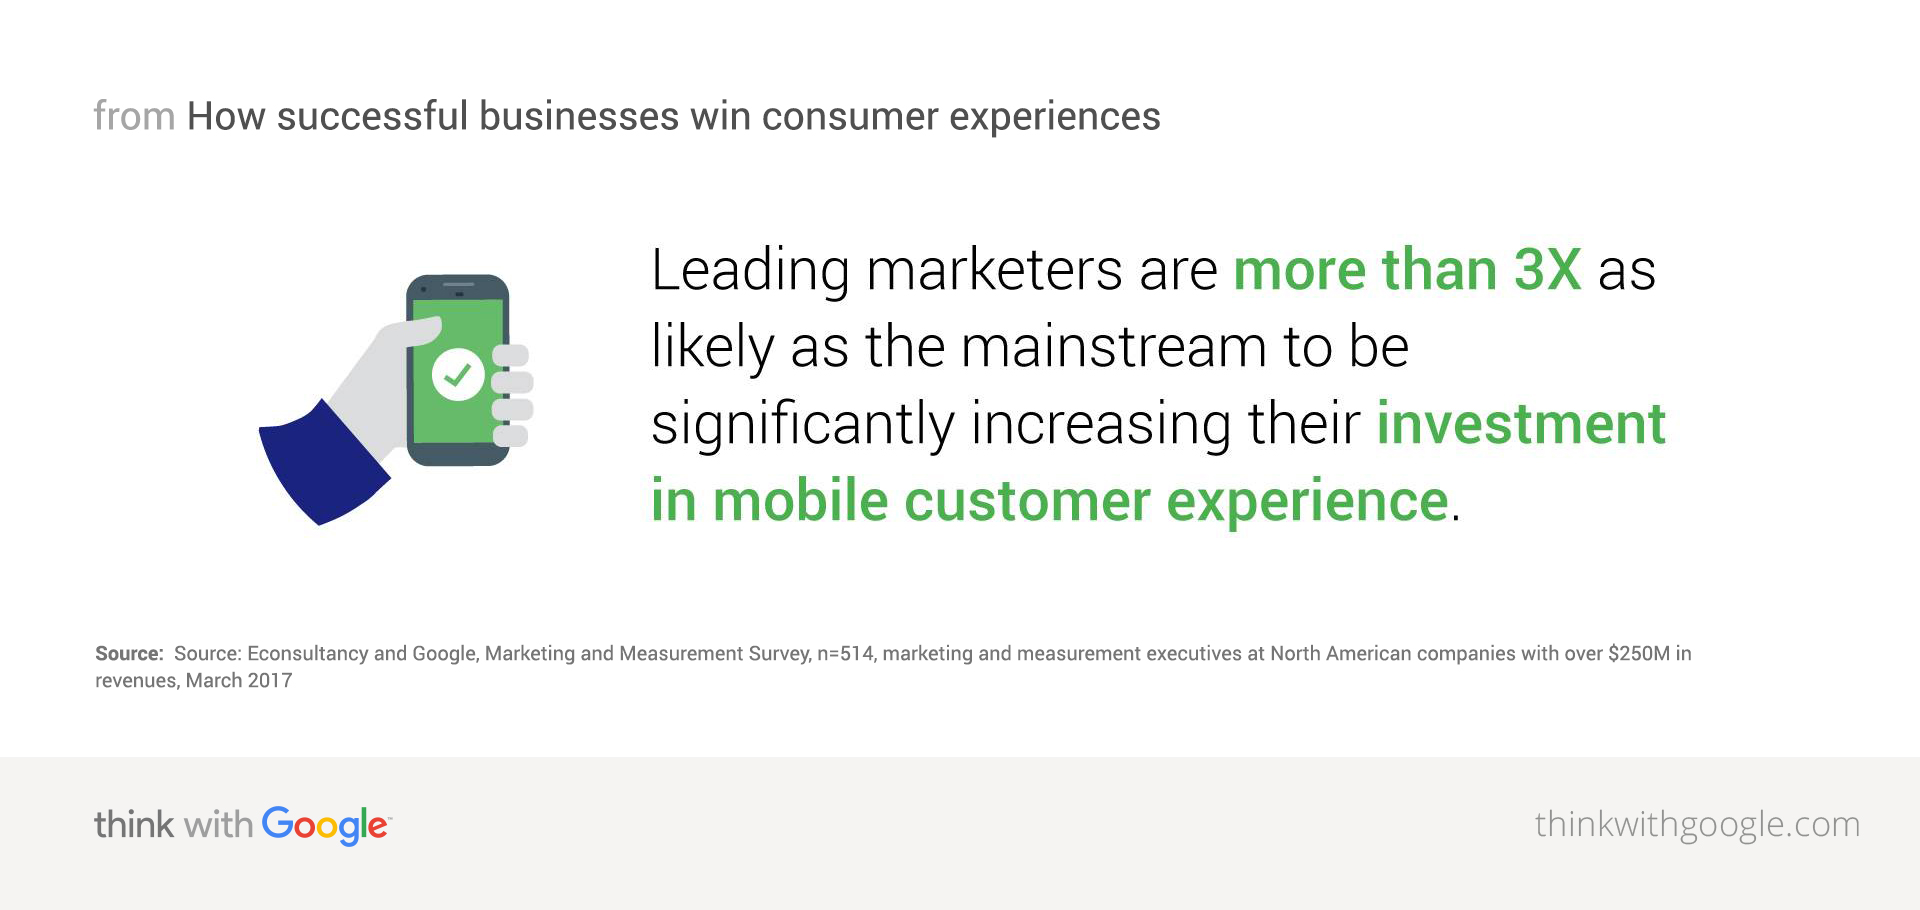 Leading Marketers are 31% More Likely than Mainstream Marketers to have Increased Investment in Technologies that make Site Experiences Faster